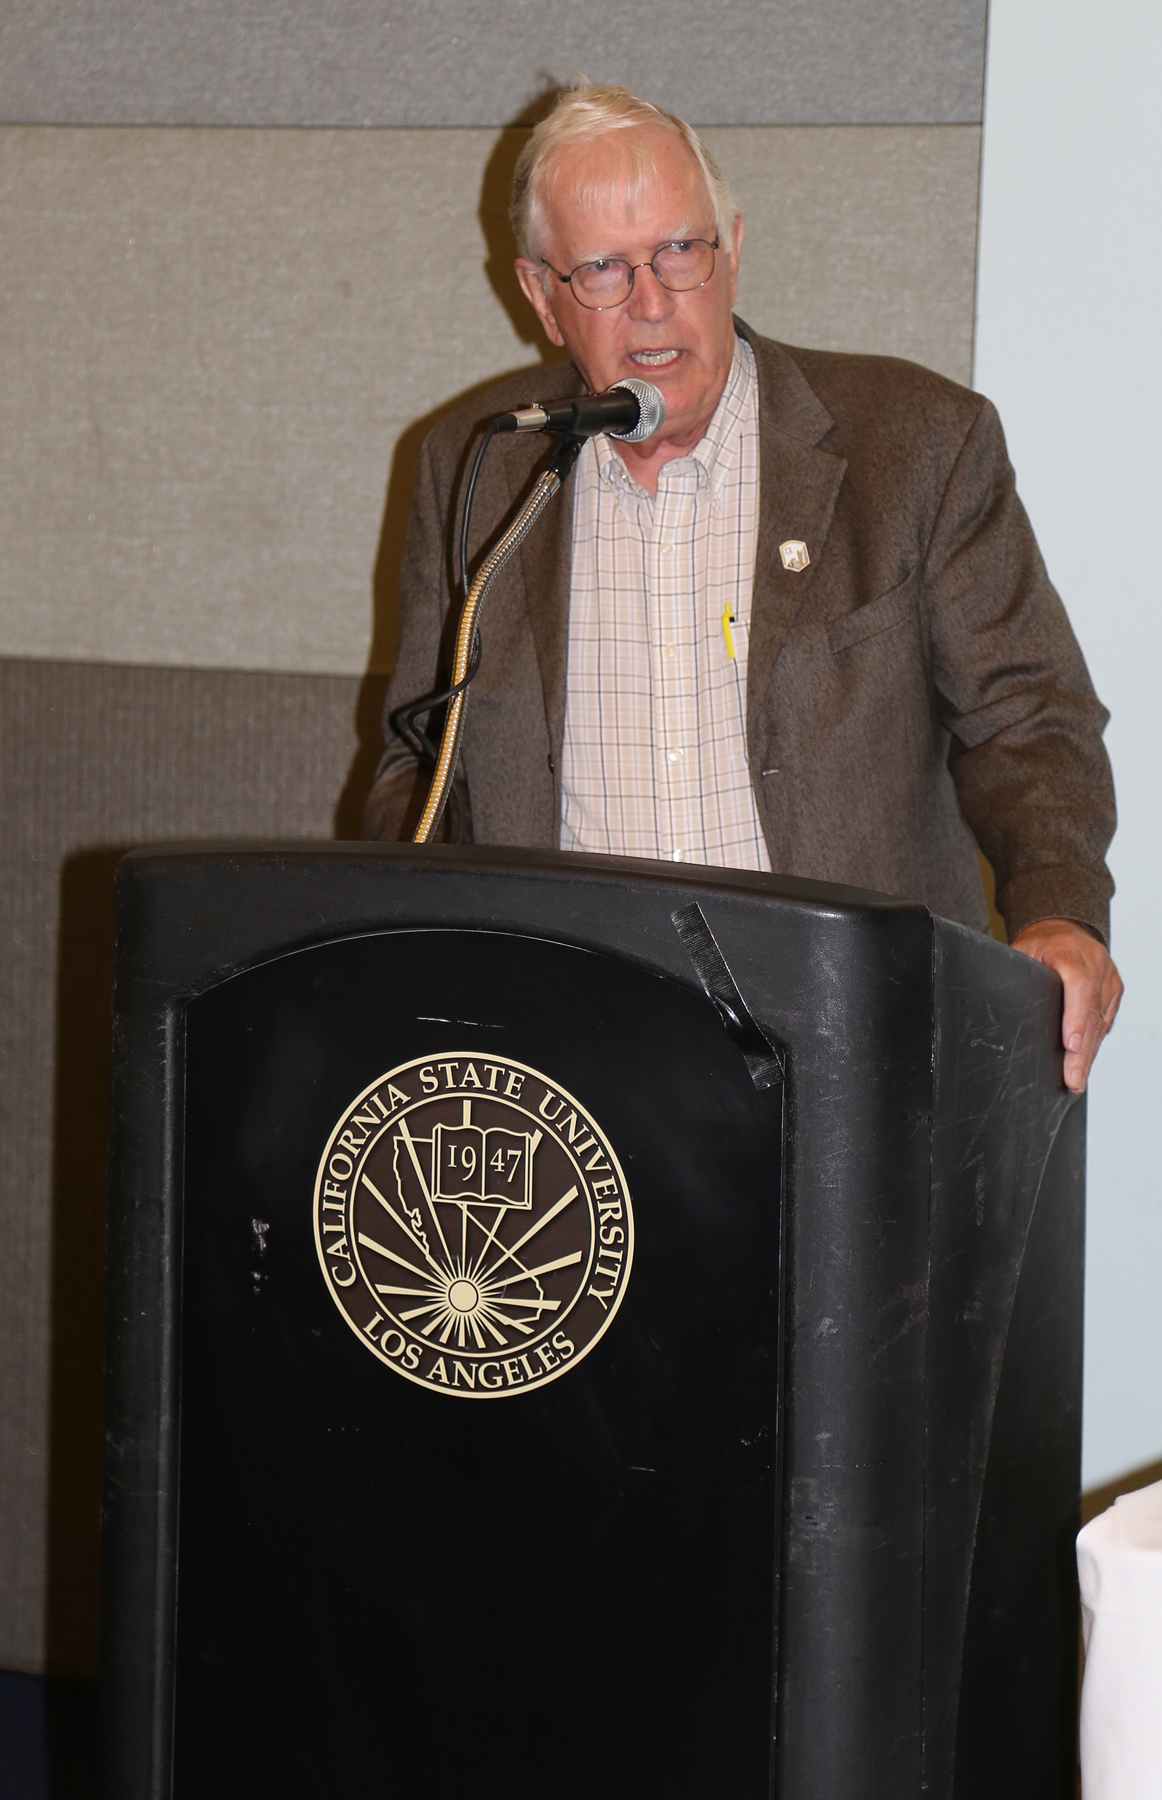 Speaker at fall luncheon